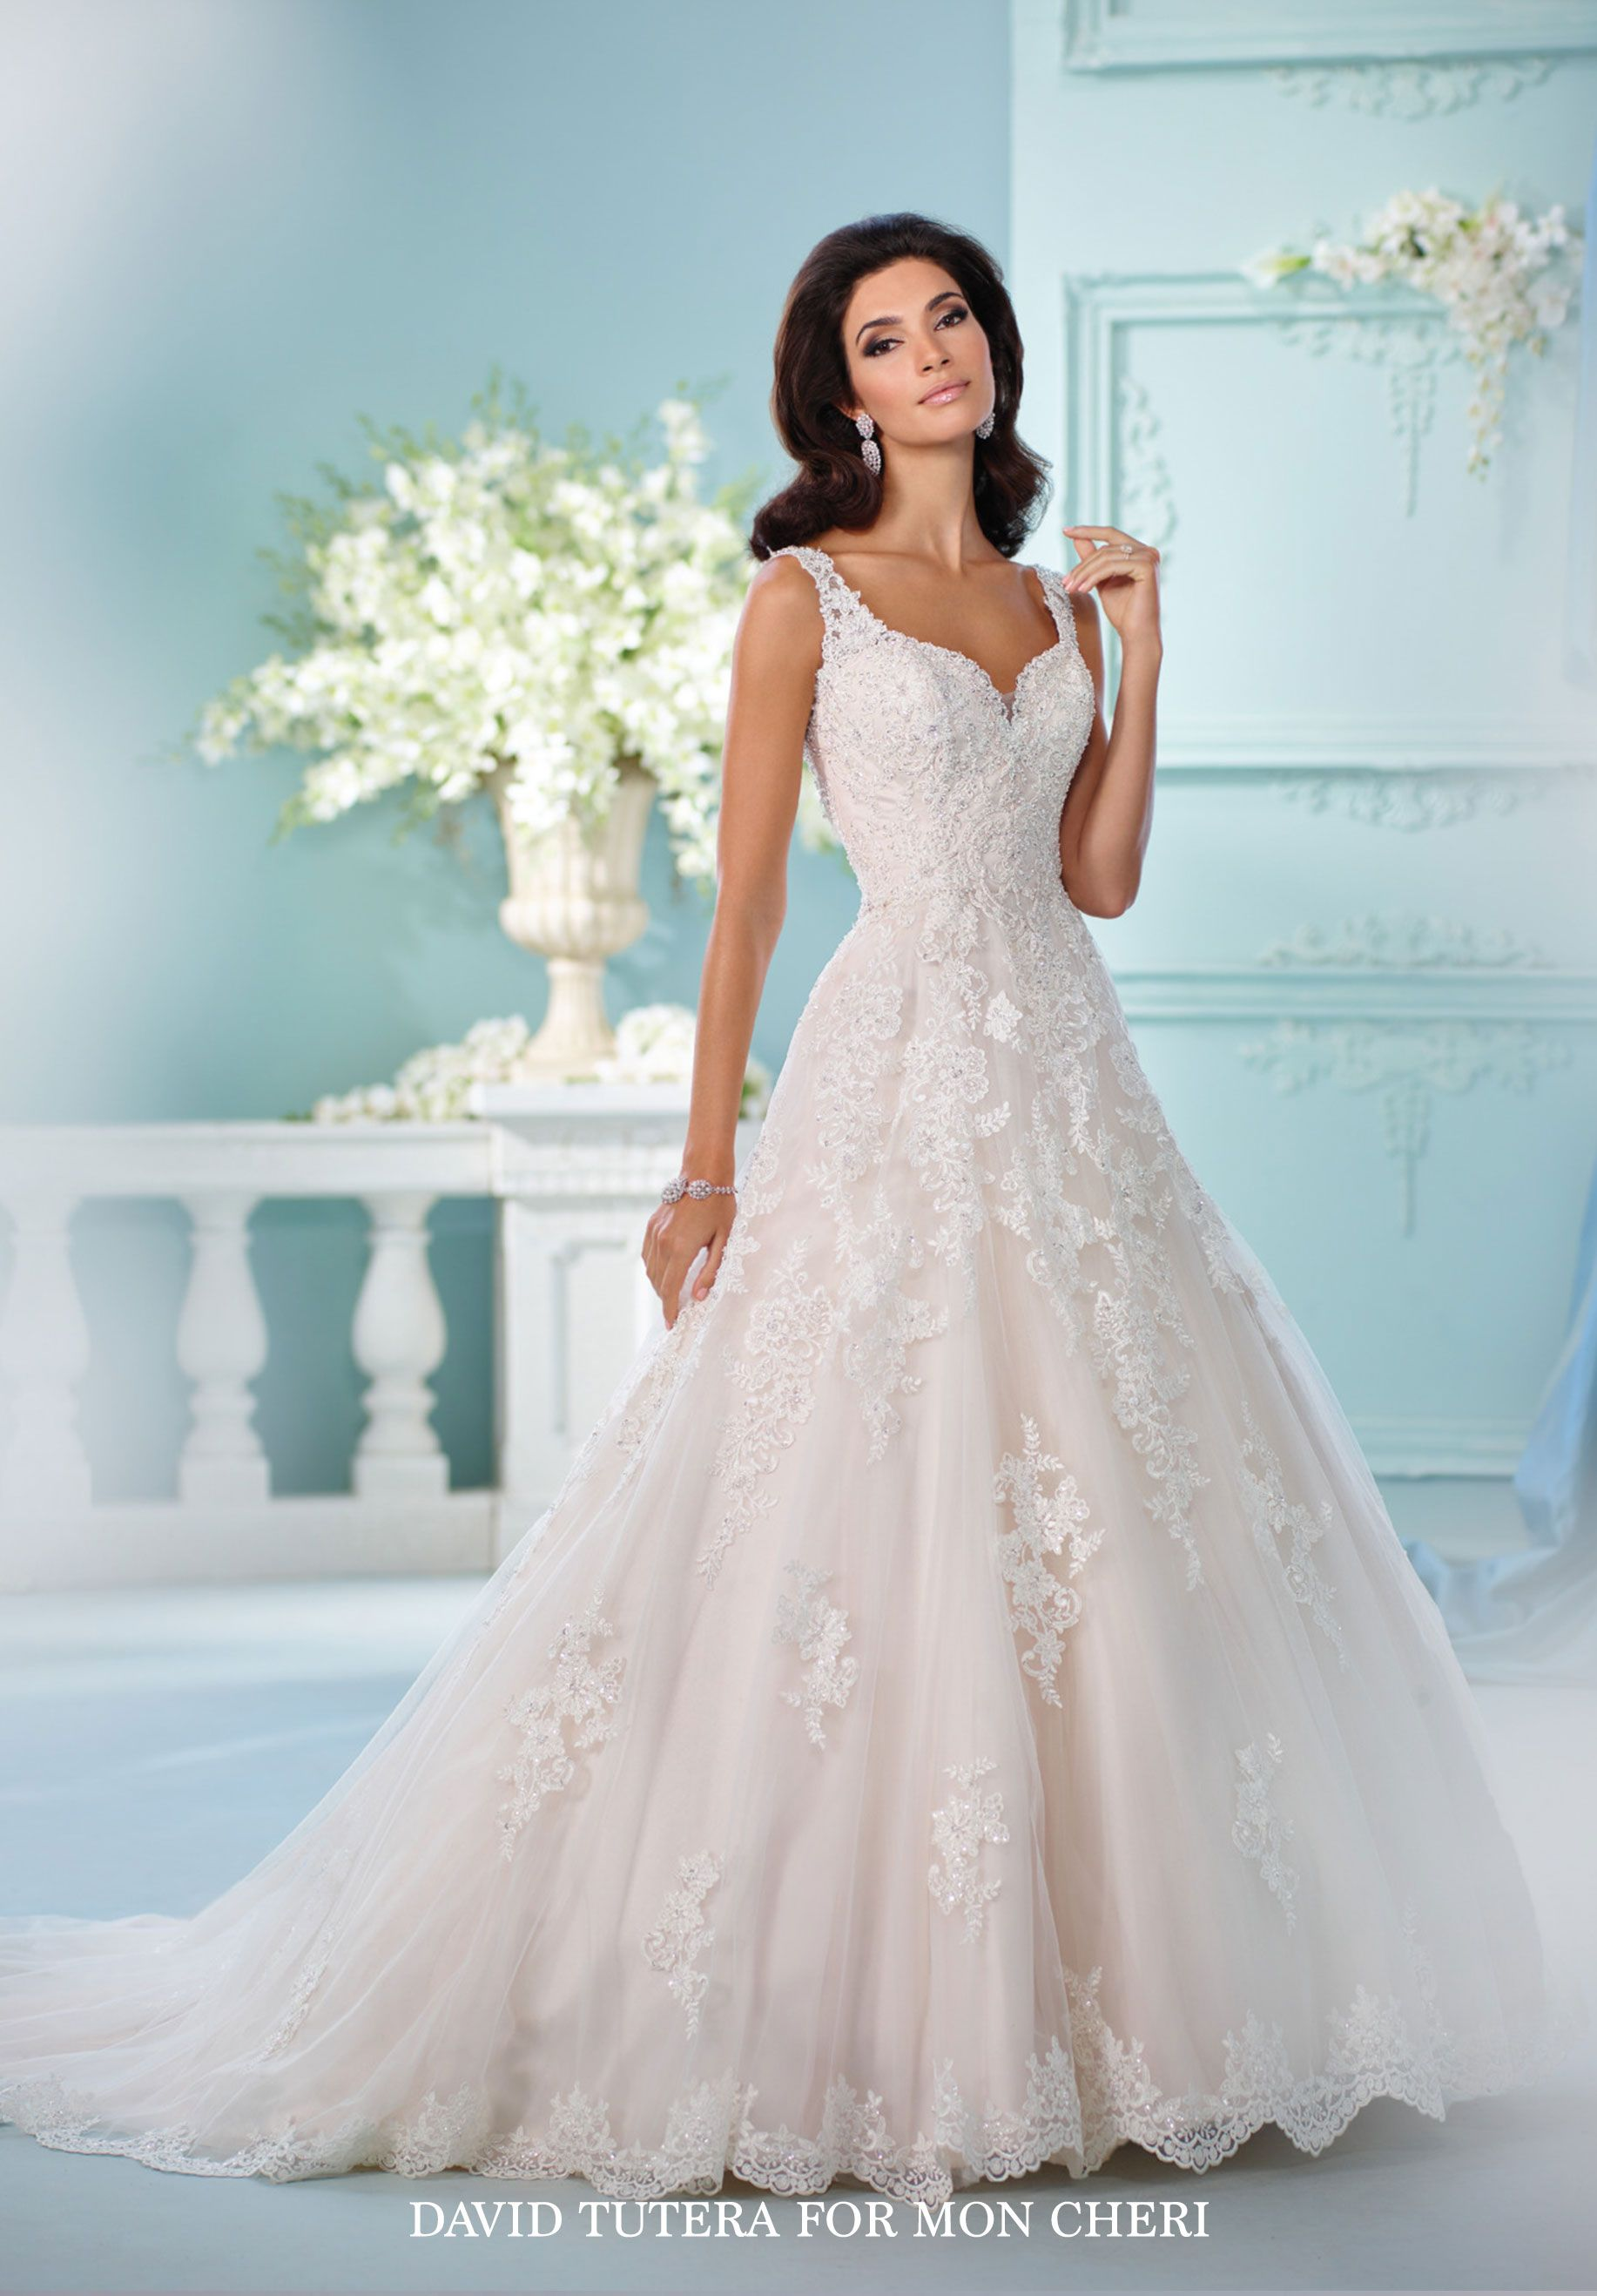 Amazing Wedding Dress Outlets Vignette - All Wedding Dresses ...